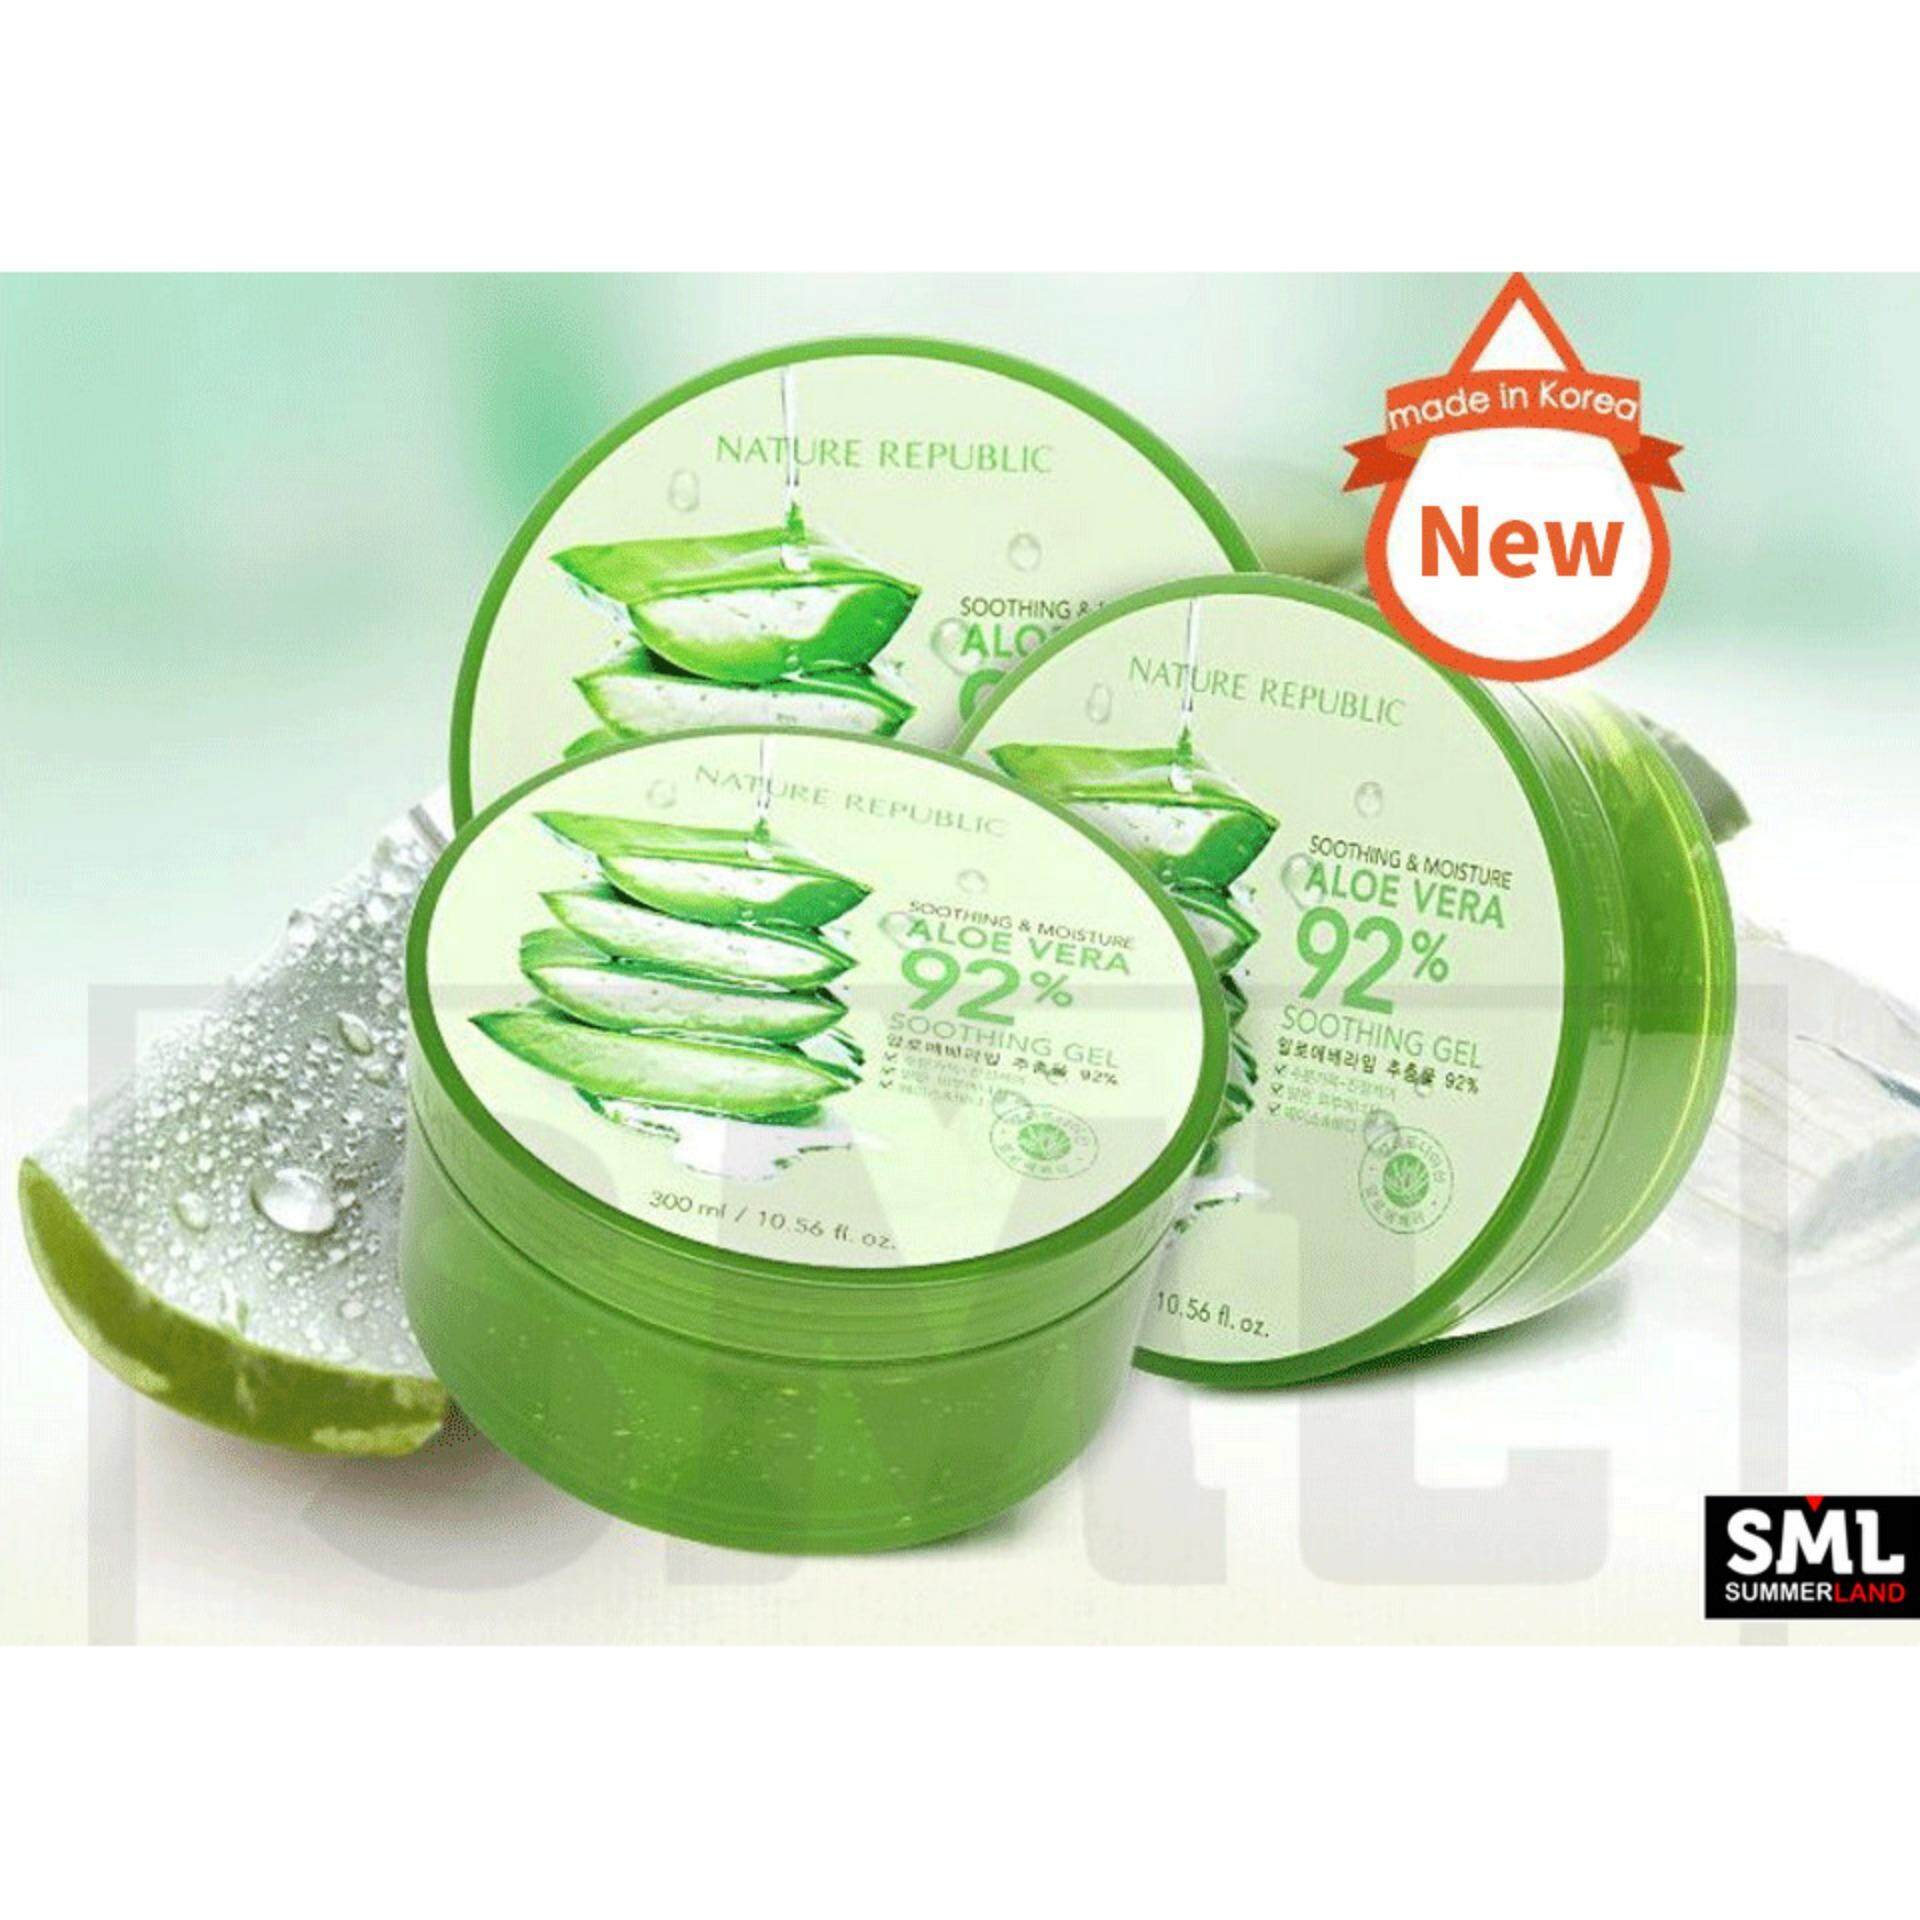 Health Beauty Skincare Buy At Best Nature Republic Aloe Vera 92 Soothing Gel 300ml Original 11 Units And Moisture